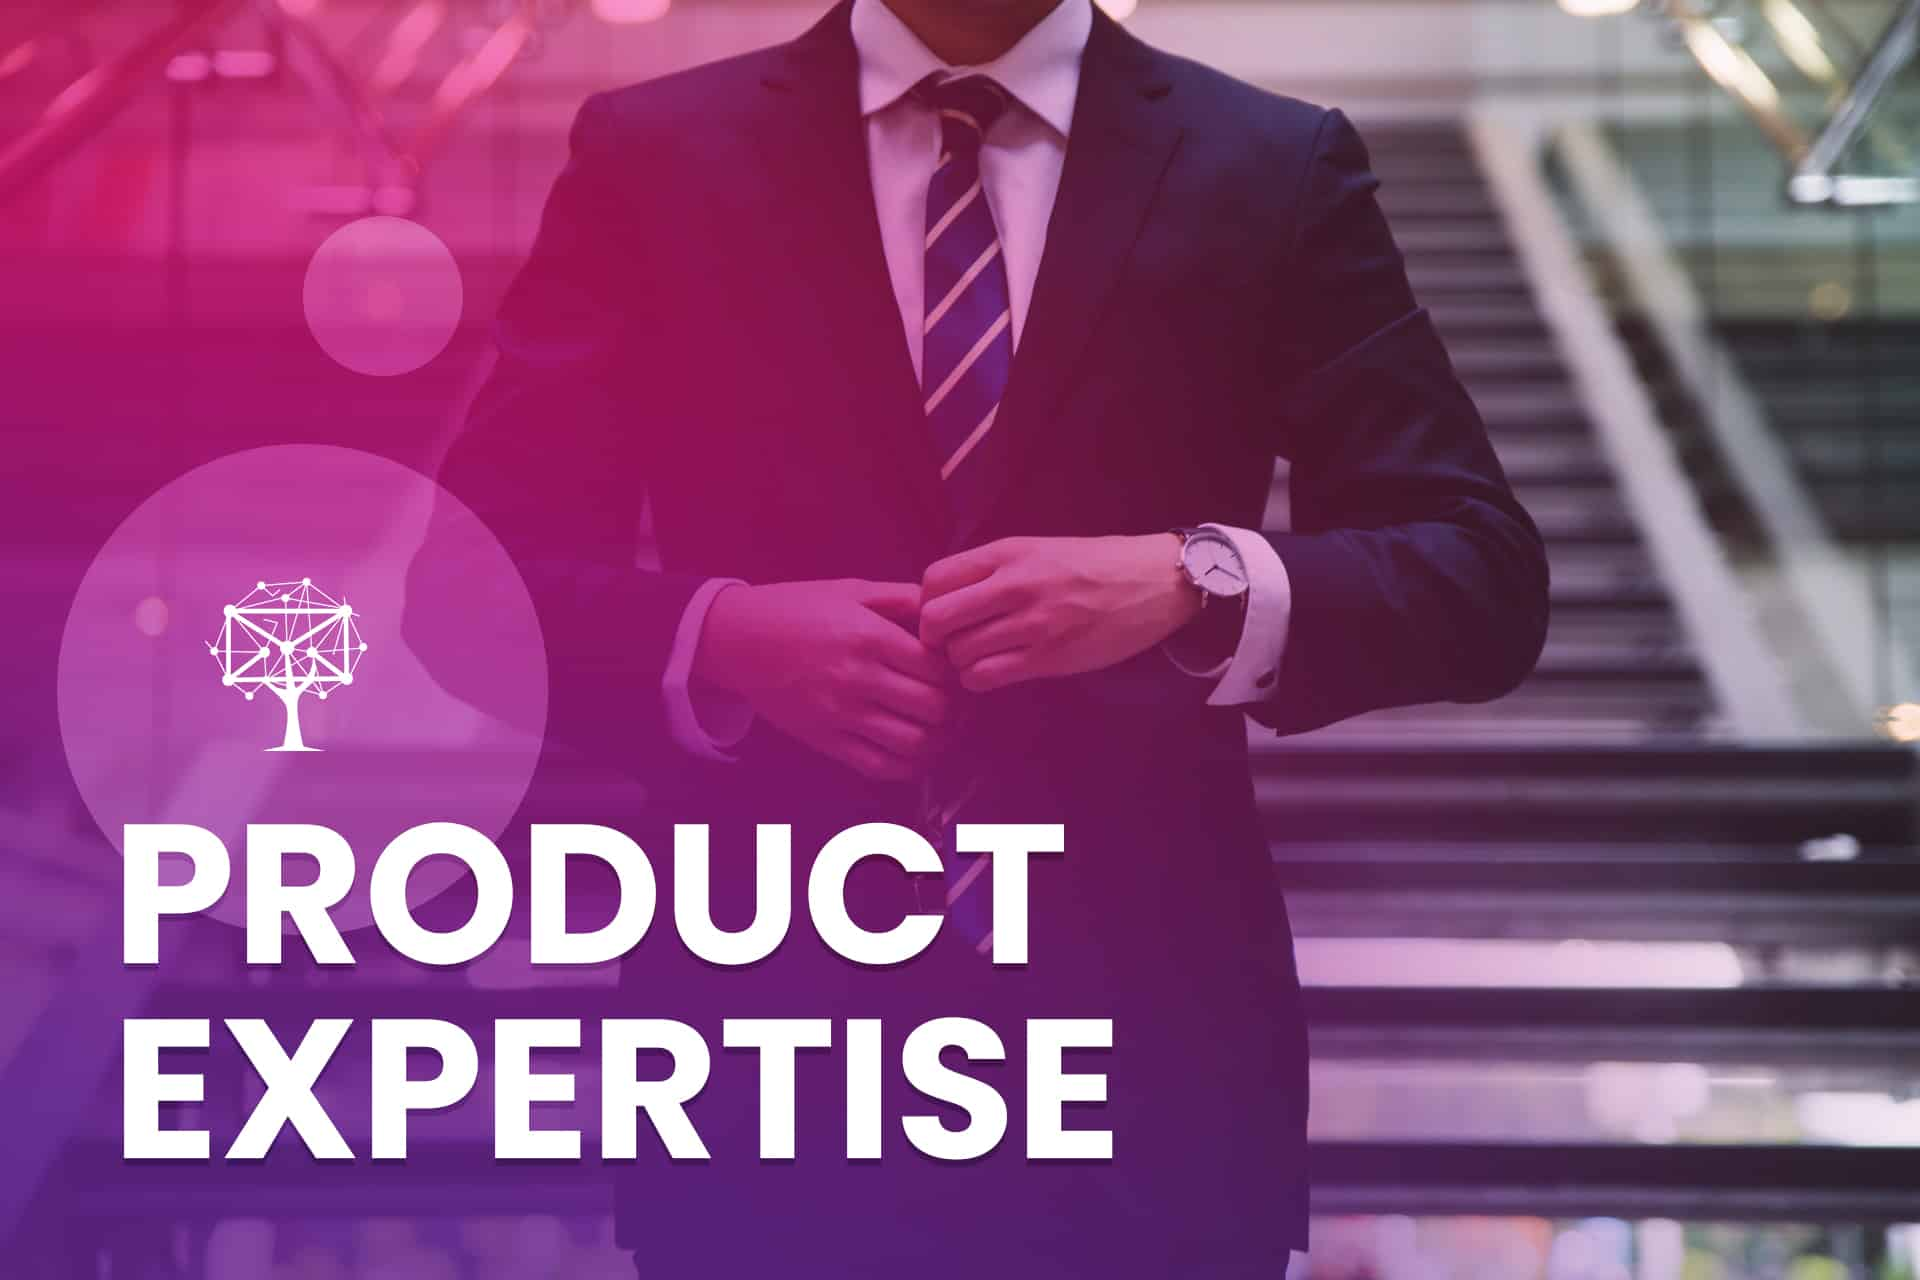 Product Expertise is a key customer service skill